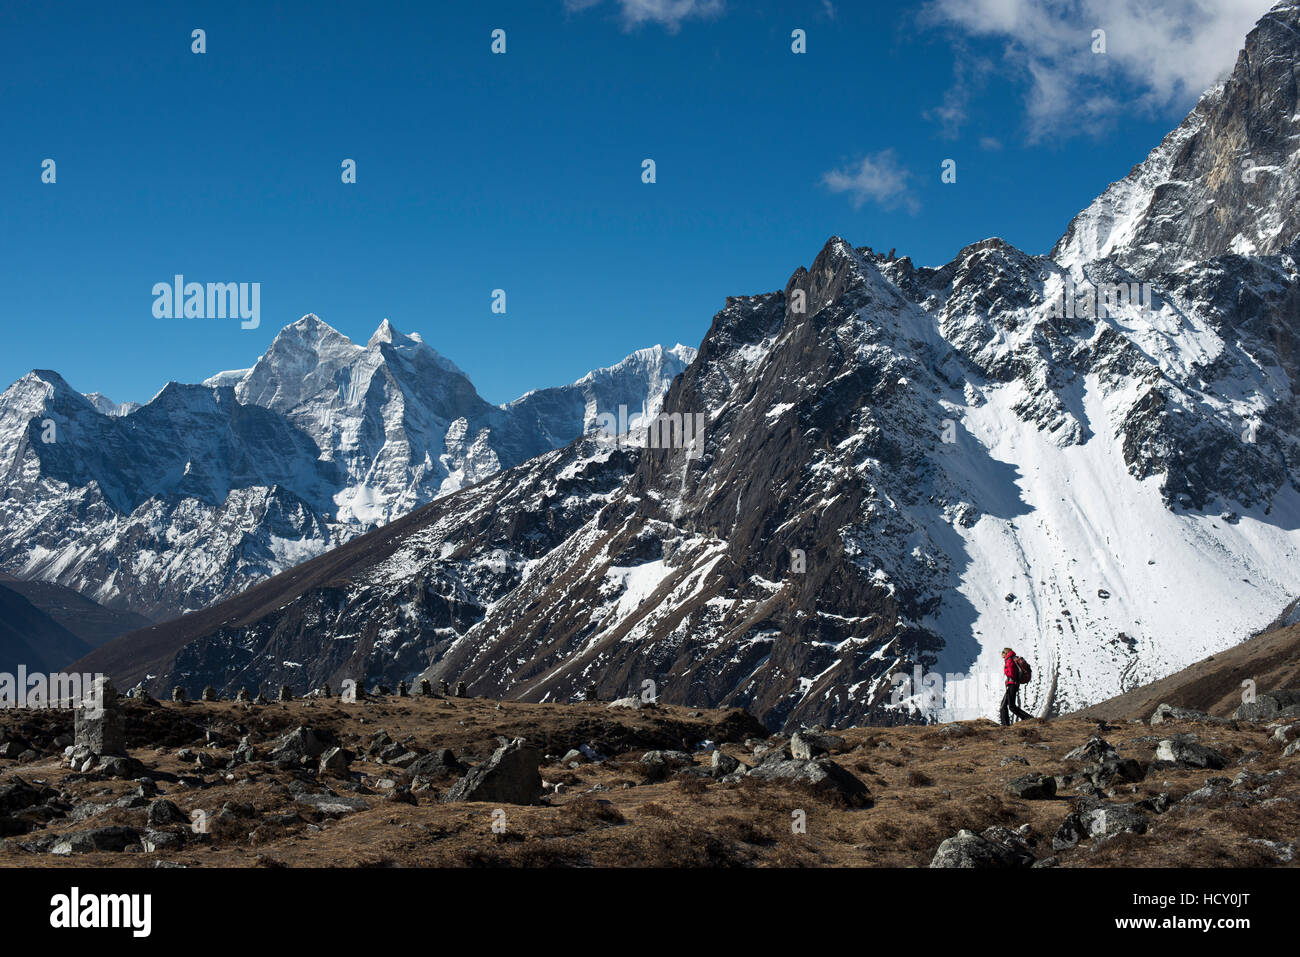 A trekker in the Everest region on the way up to Everest Base Camp seen here walking in front of Cholatse, Khumbu - Stock Image